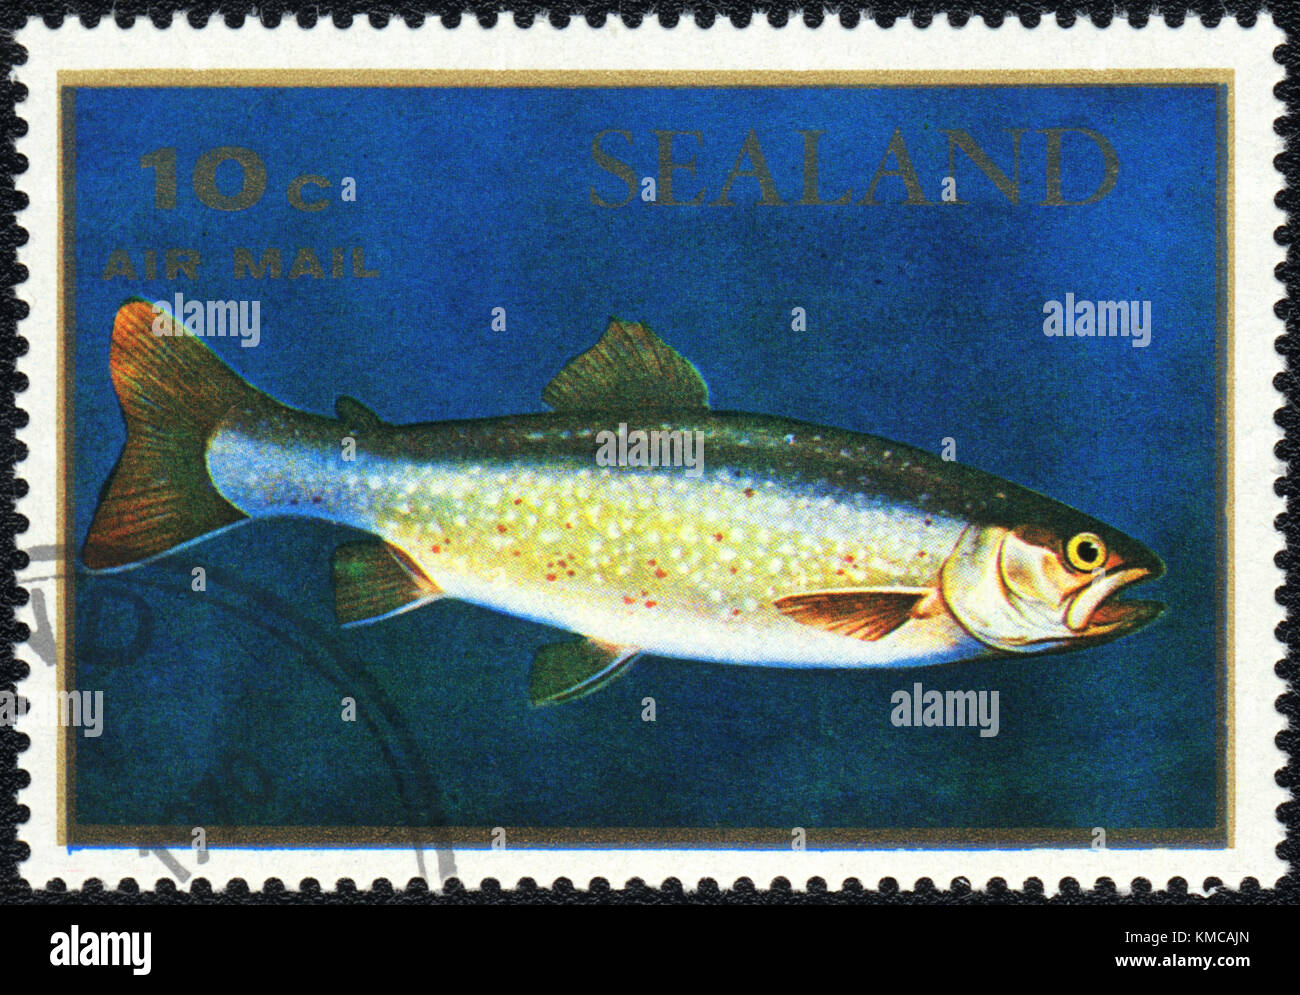 A stamp printed in PRINCIPALITY OF SEALAND shows  a Salmo salar, series, circa 1970 - Stock Image